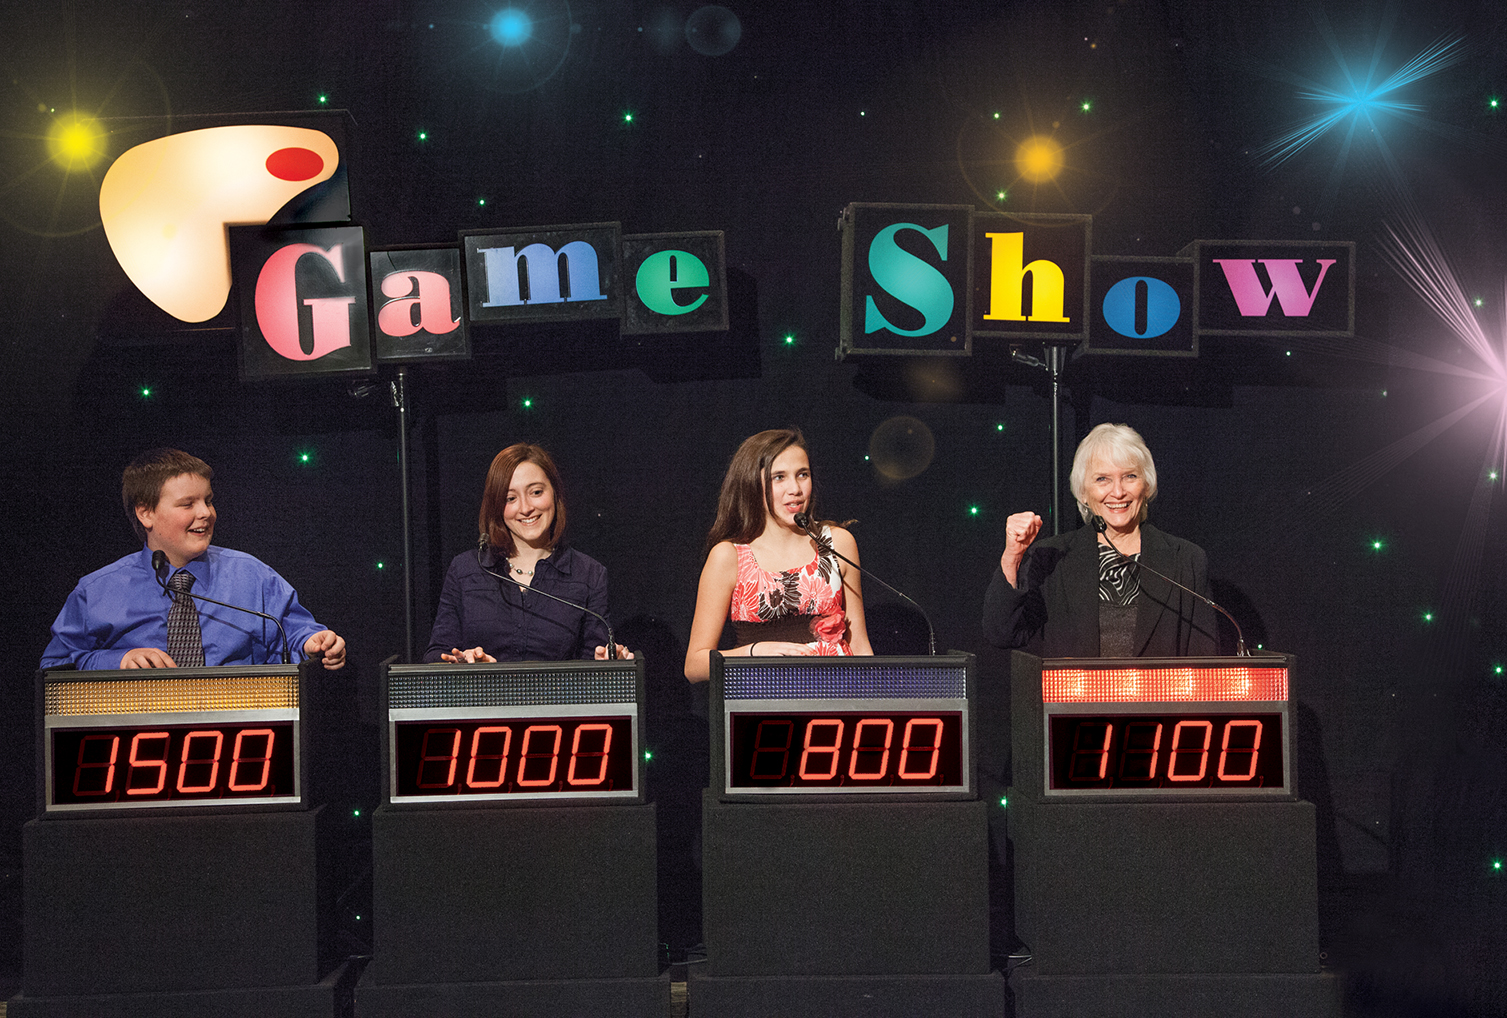 Ultimate Trivia Game Show